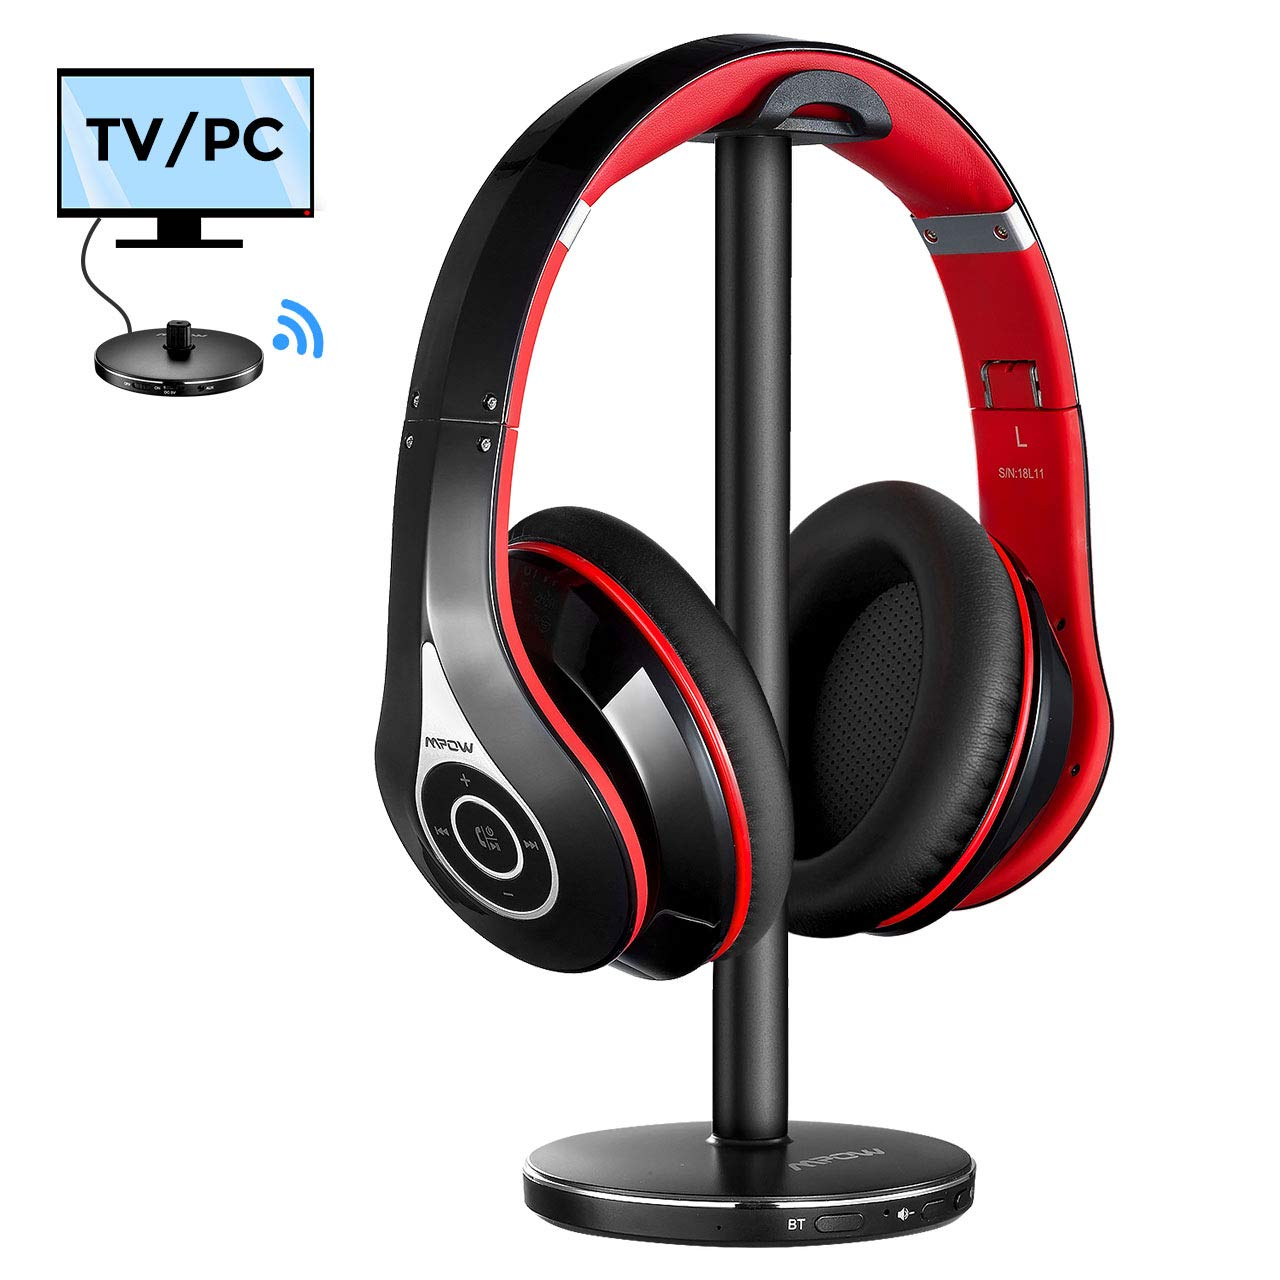 Mpow TV Bluetooth Headphones Over Ear, 059 Headphones with Upgraded 5.0 Bluetooth Transmitter Headphone Stand, Foldable Hi-Fi Stereo Wireless TV Headset, Plug Play for Cell Phones TV PC AV Receiver